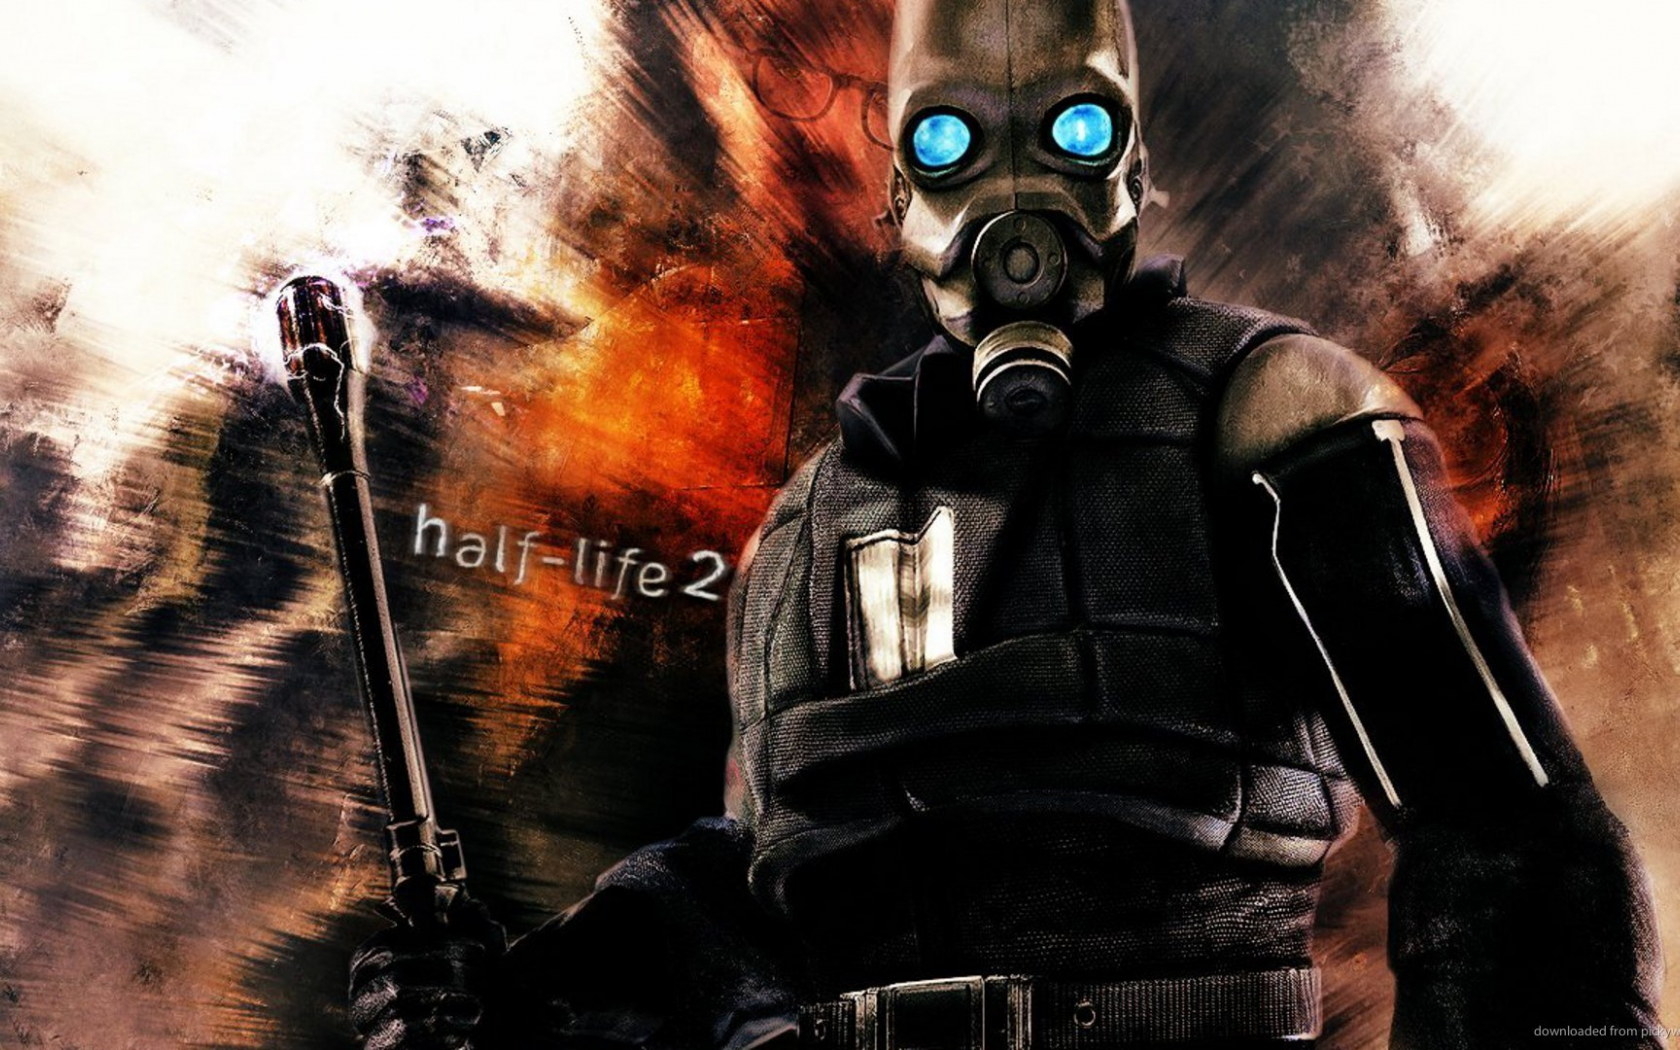 Free Download Download 1920x1080 Half Life 2 Combine Art Wallpaper